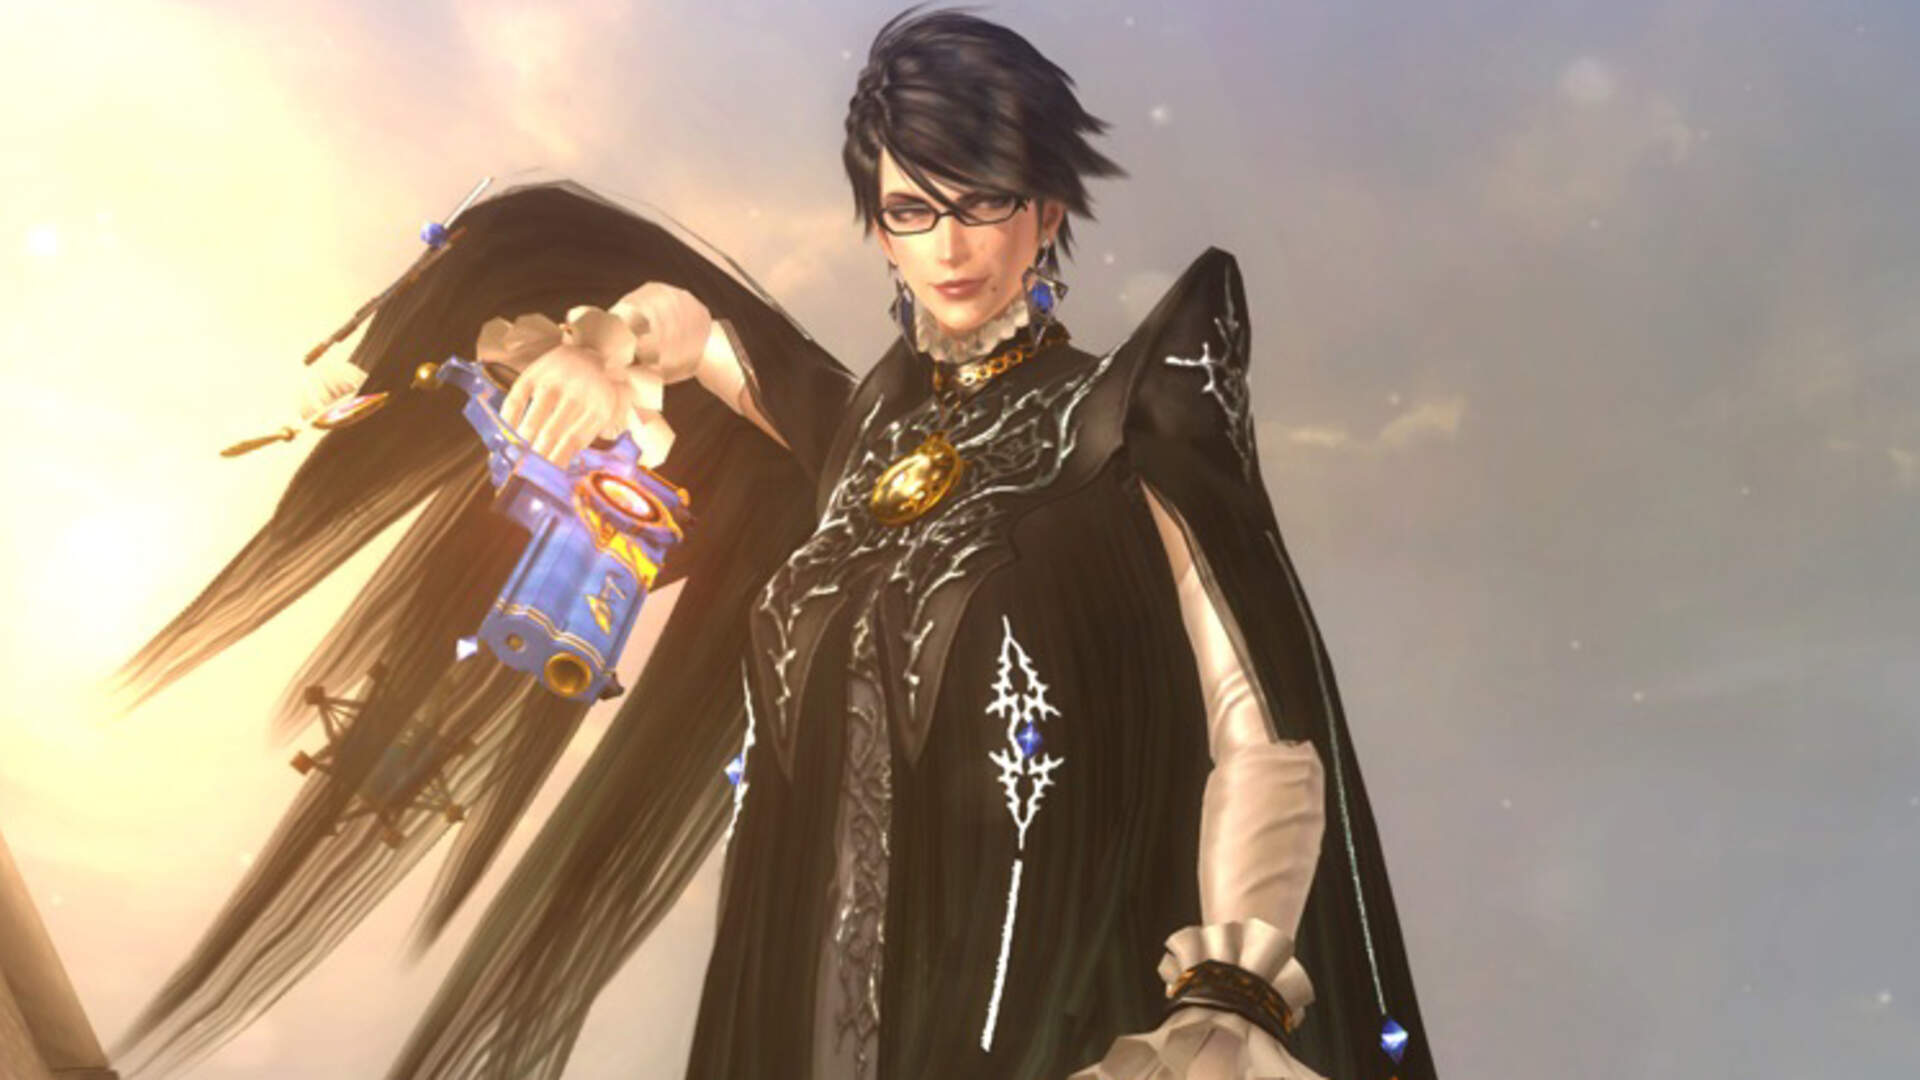 USgamer Club Live: Bayonetta 2 Part 2 — Kat and Bob Go Beyond the Time at 3pm PT/6pm ET